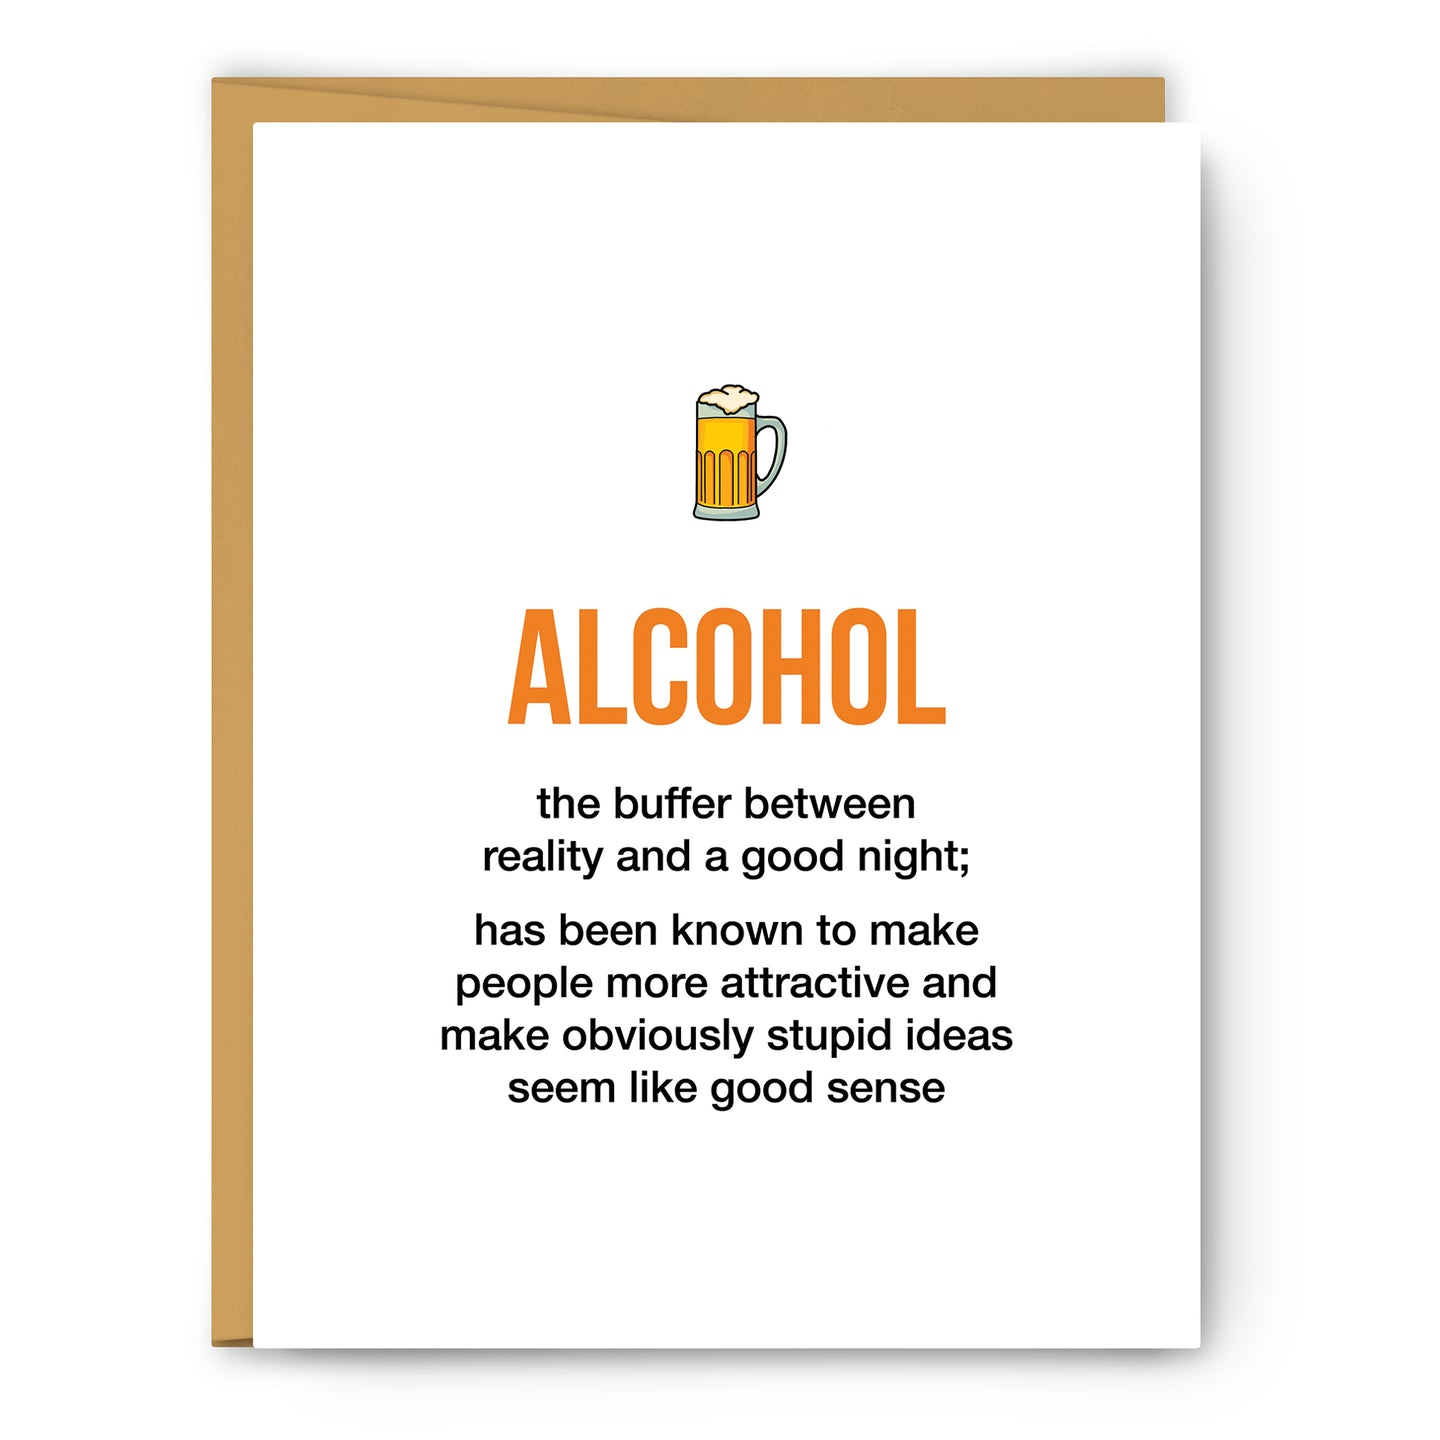 Alcohol Definition Illustration - Unframed Art Print Poster Or Greeting Card